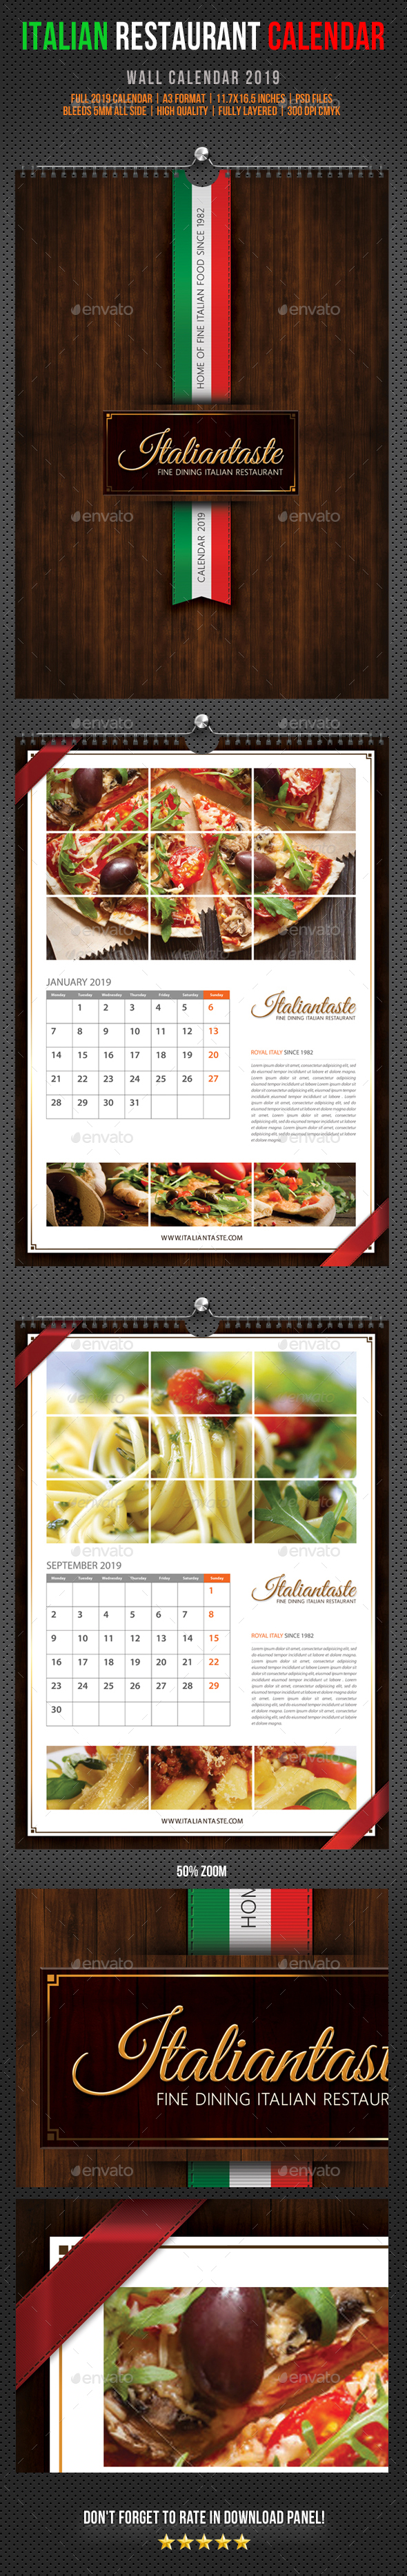 Italian Restaurant Wall Calendar 2019 - Calendars Stationery